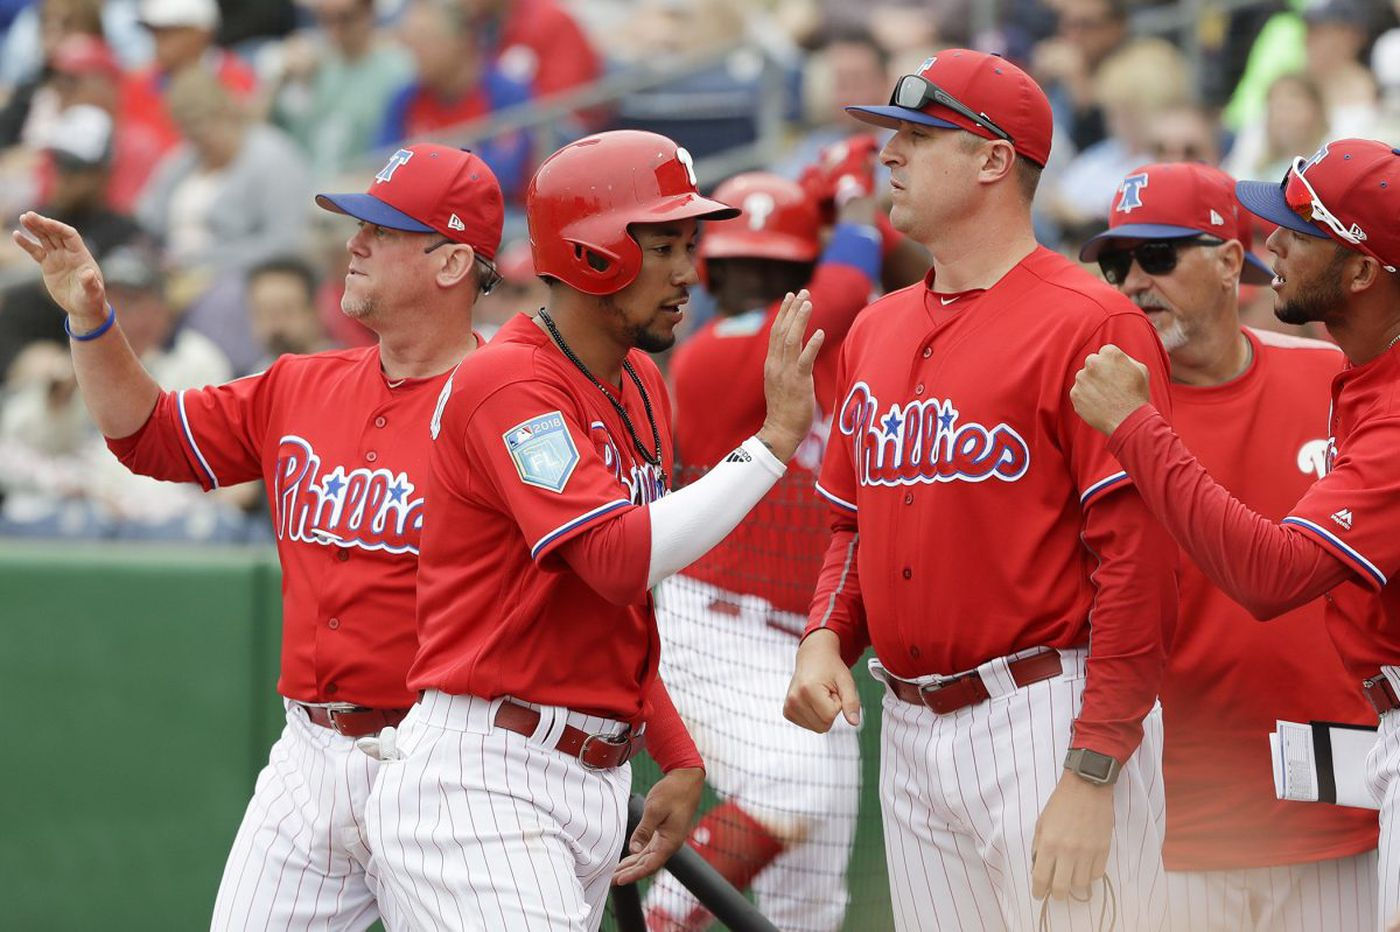 Batting eighth for the Phillies, the pitcher